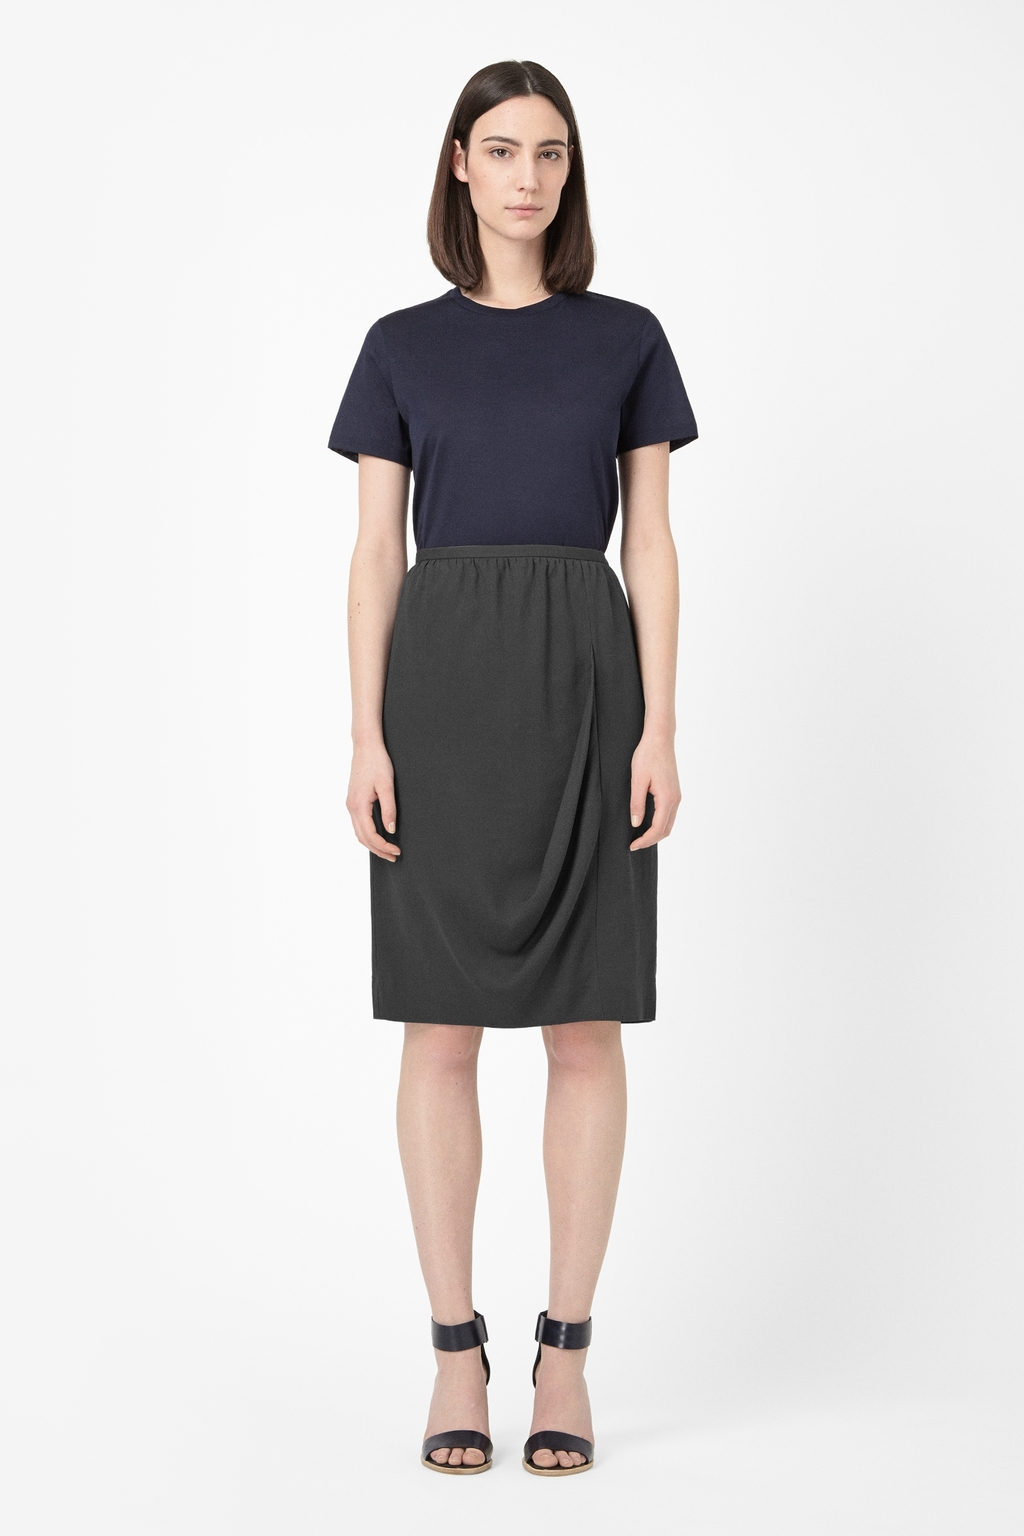 Front Drape Skirt - pattern: plain; style: straight; waist: high rise; predominant colour: charcoal; occasions: casual, creative work; length: on the knee; fibres: viscose/rayon - 100%; hip detail: subtle/flattering hip detail; fit: straight cut; pattern type: fabric; texture group: woven light midweight; season: s/s 2014